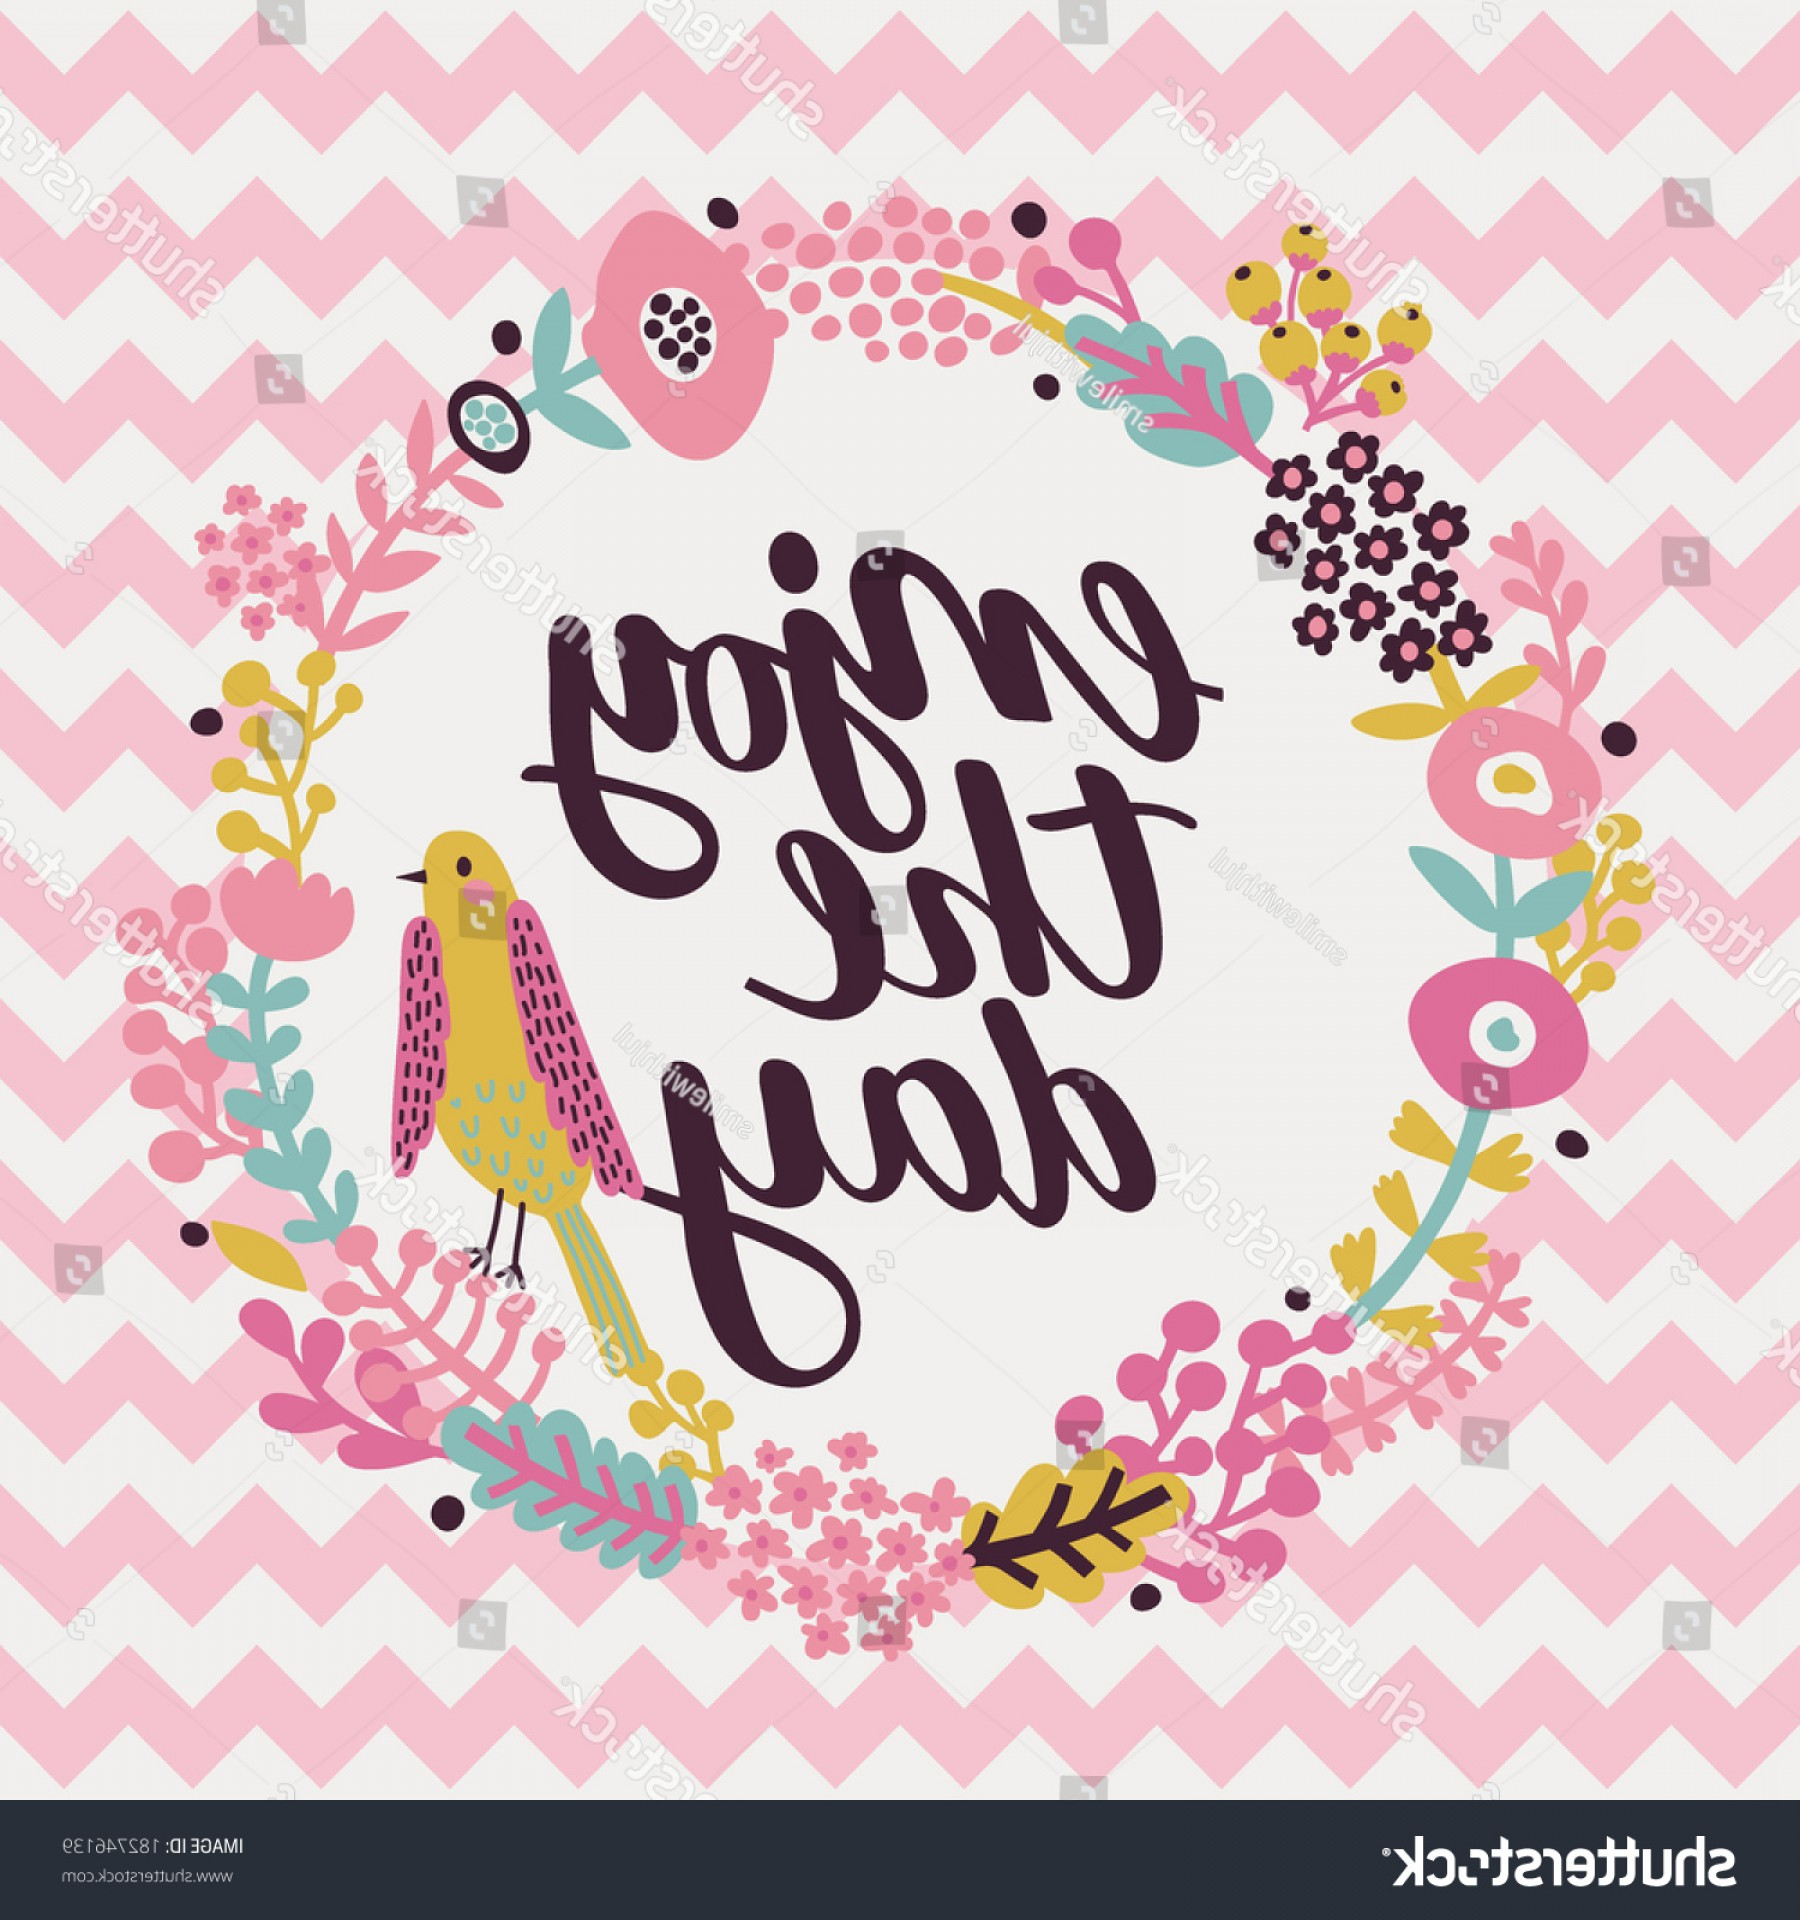 Inspirational Backgrounds Vector: Inspirational Motivational Quotes Background Bright Floral